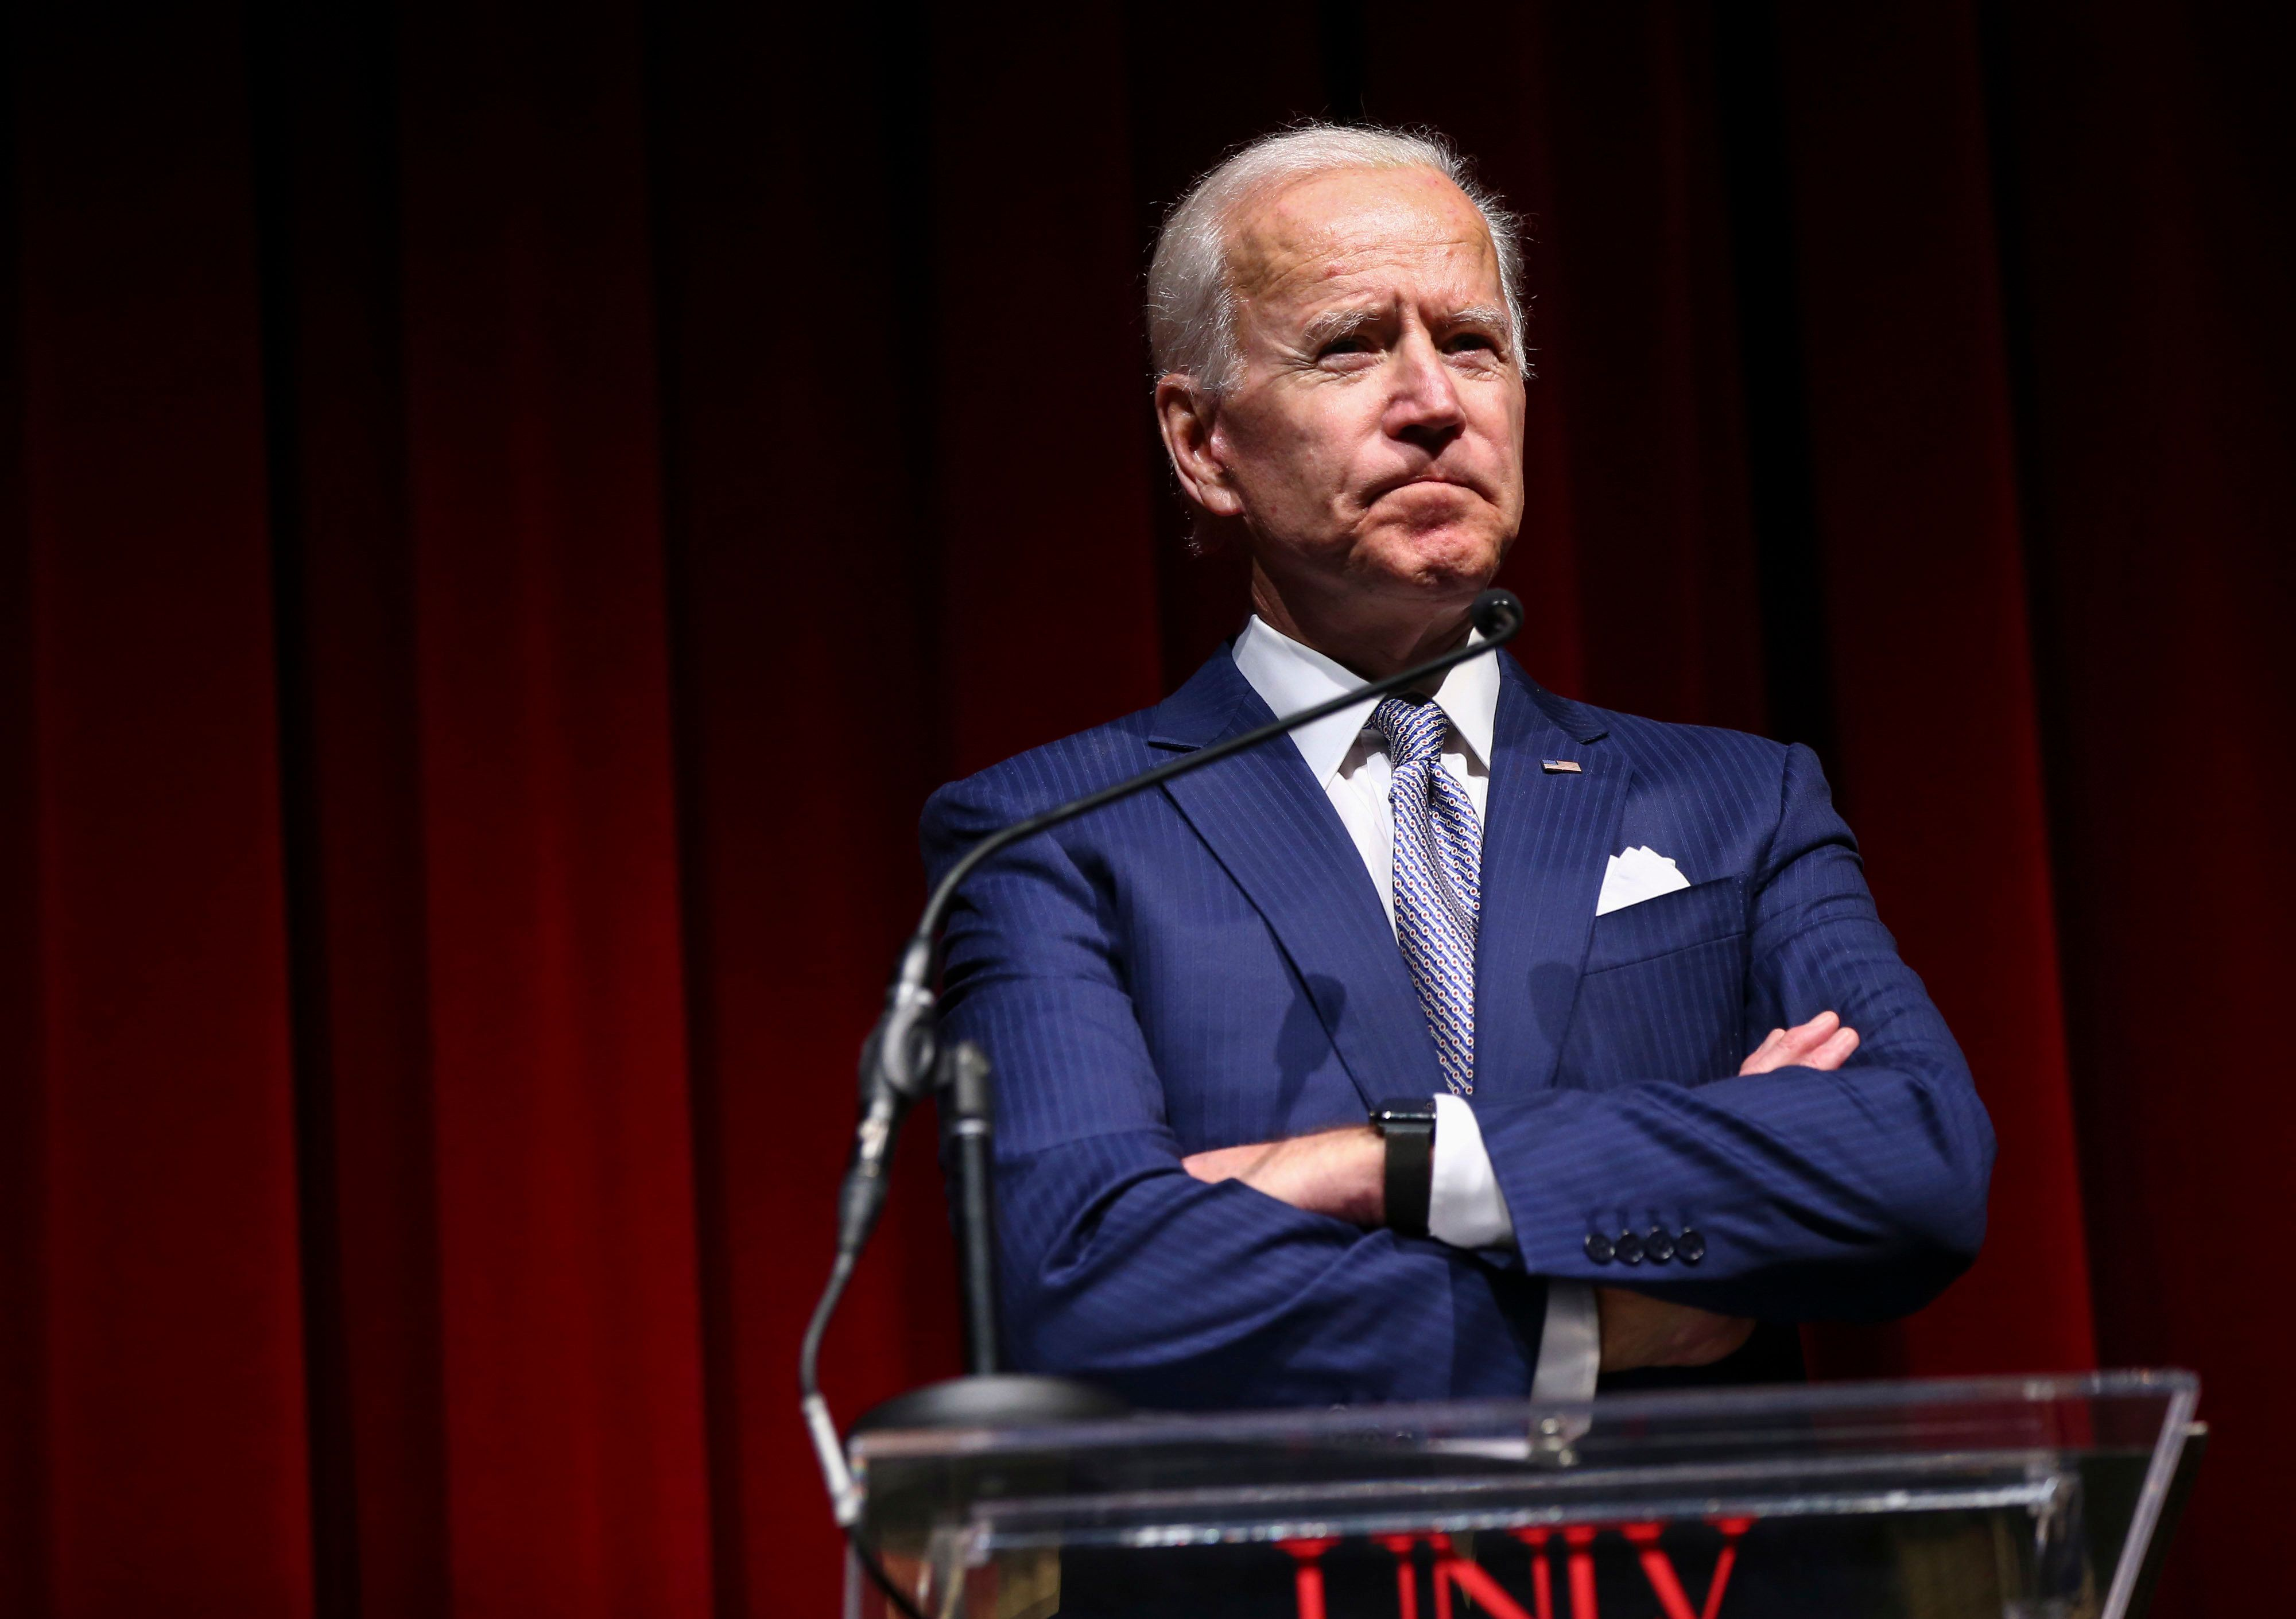 Former Vice President Joe Biden speaking during the UNLV William S. Boyd School of Law 20th Anniversary Gala in Las Vegas on